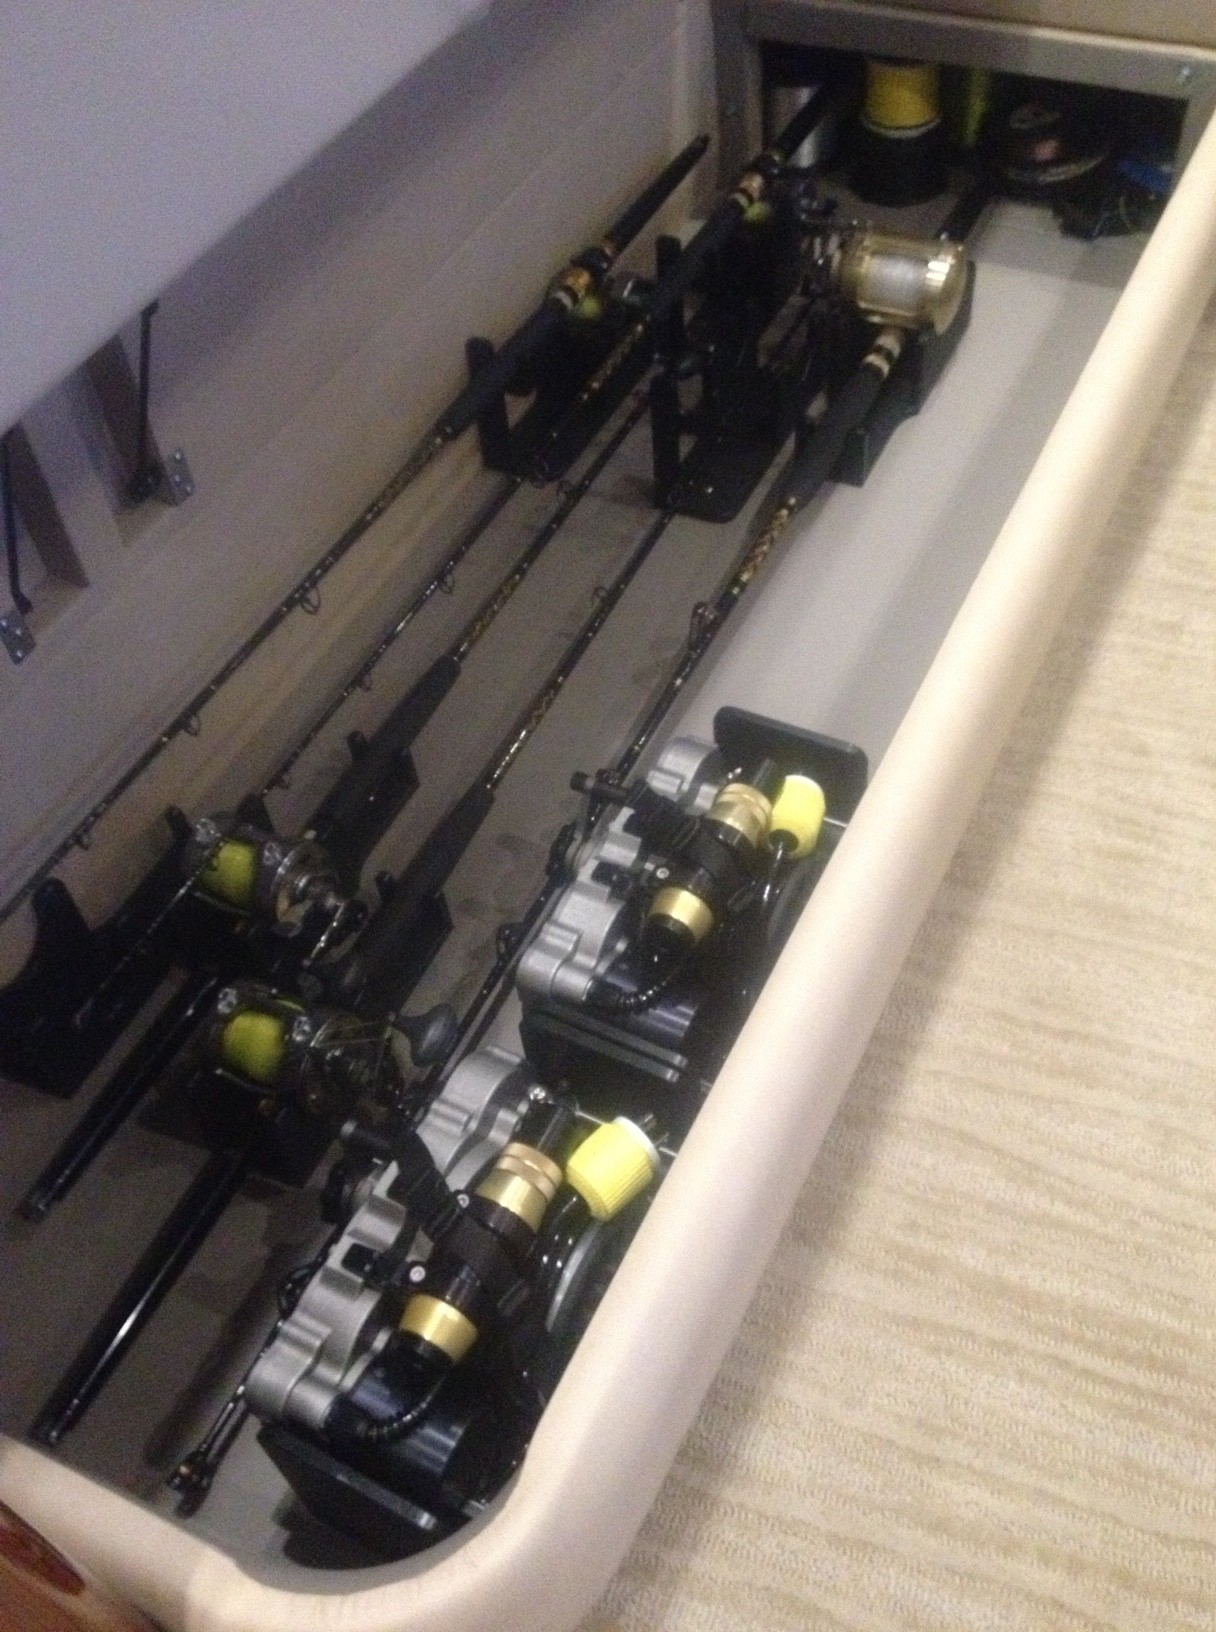 salon sofa rod and reel storage for (6) rigged tyrnos 30s, (1) rigged tiagra 50, and (2) LP s1200 reel cradles